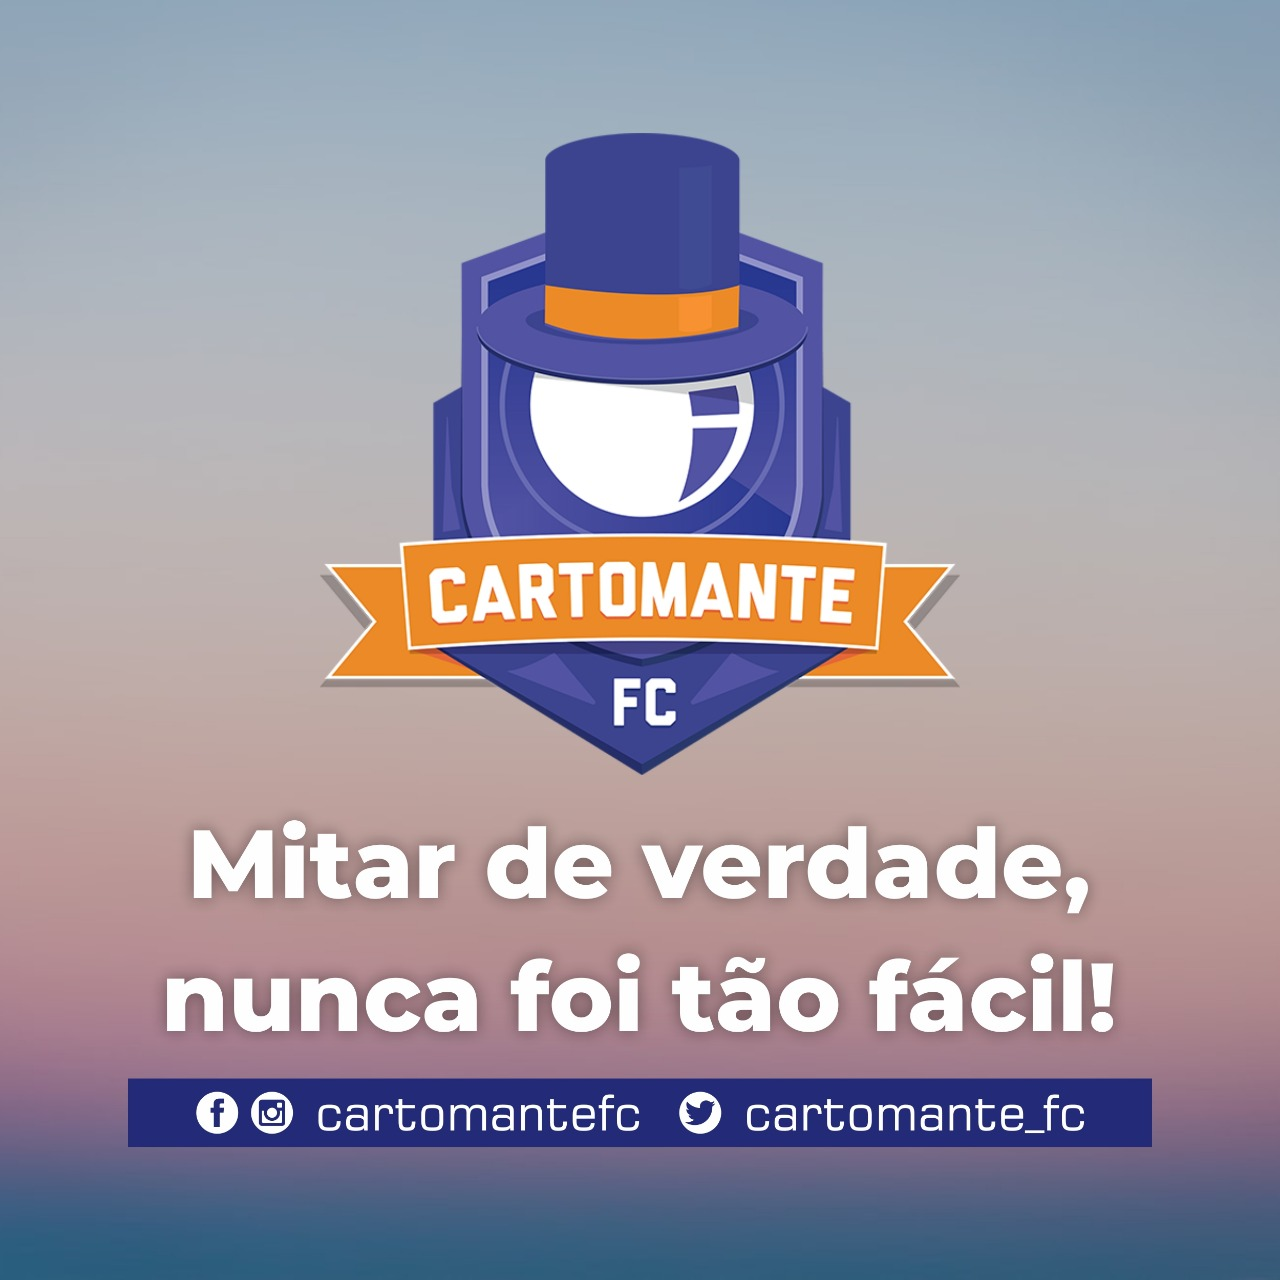 CartomanteFC